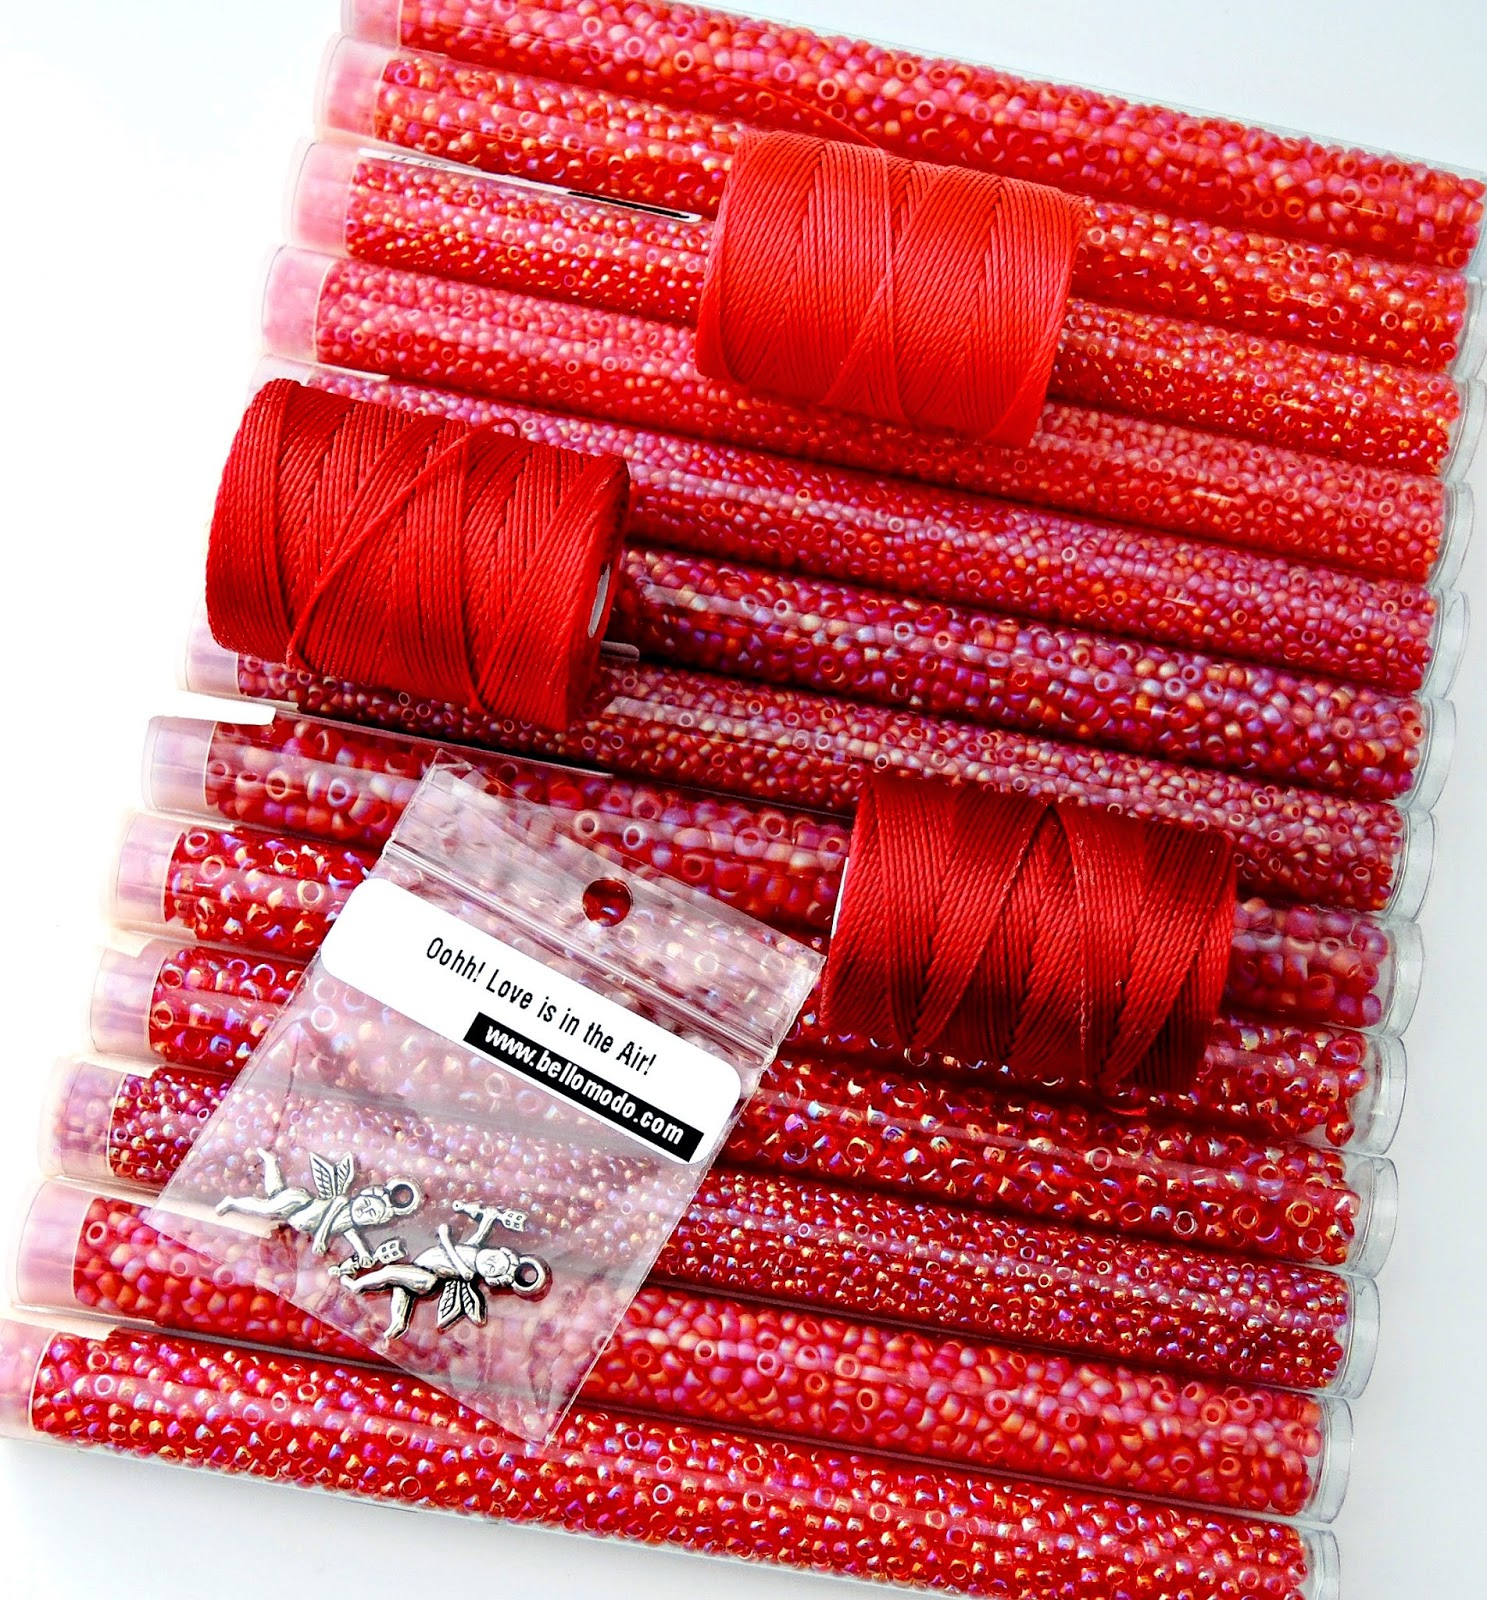 Red seed beads and nylon bead cord.